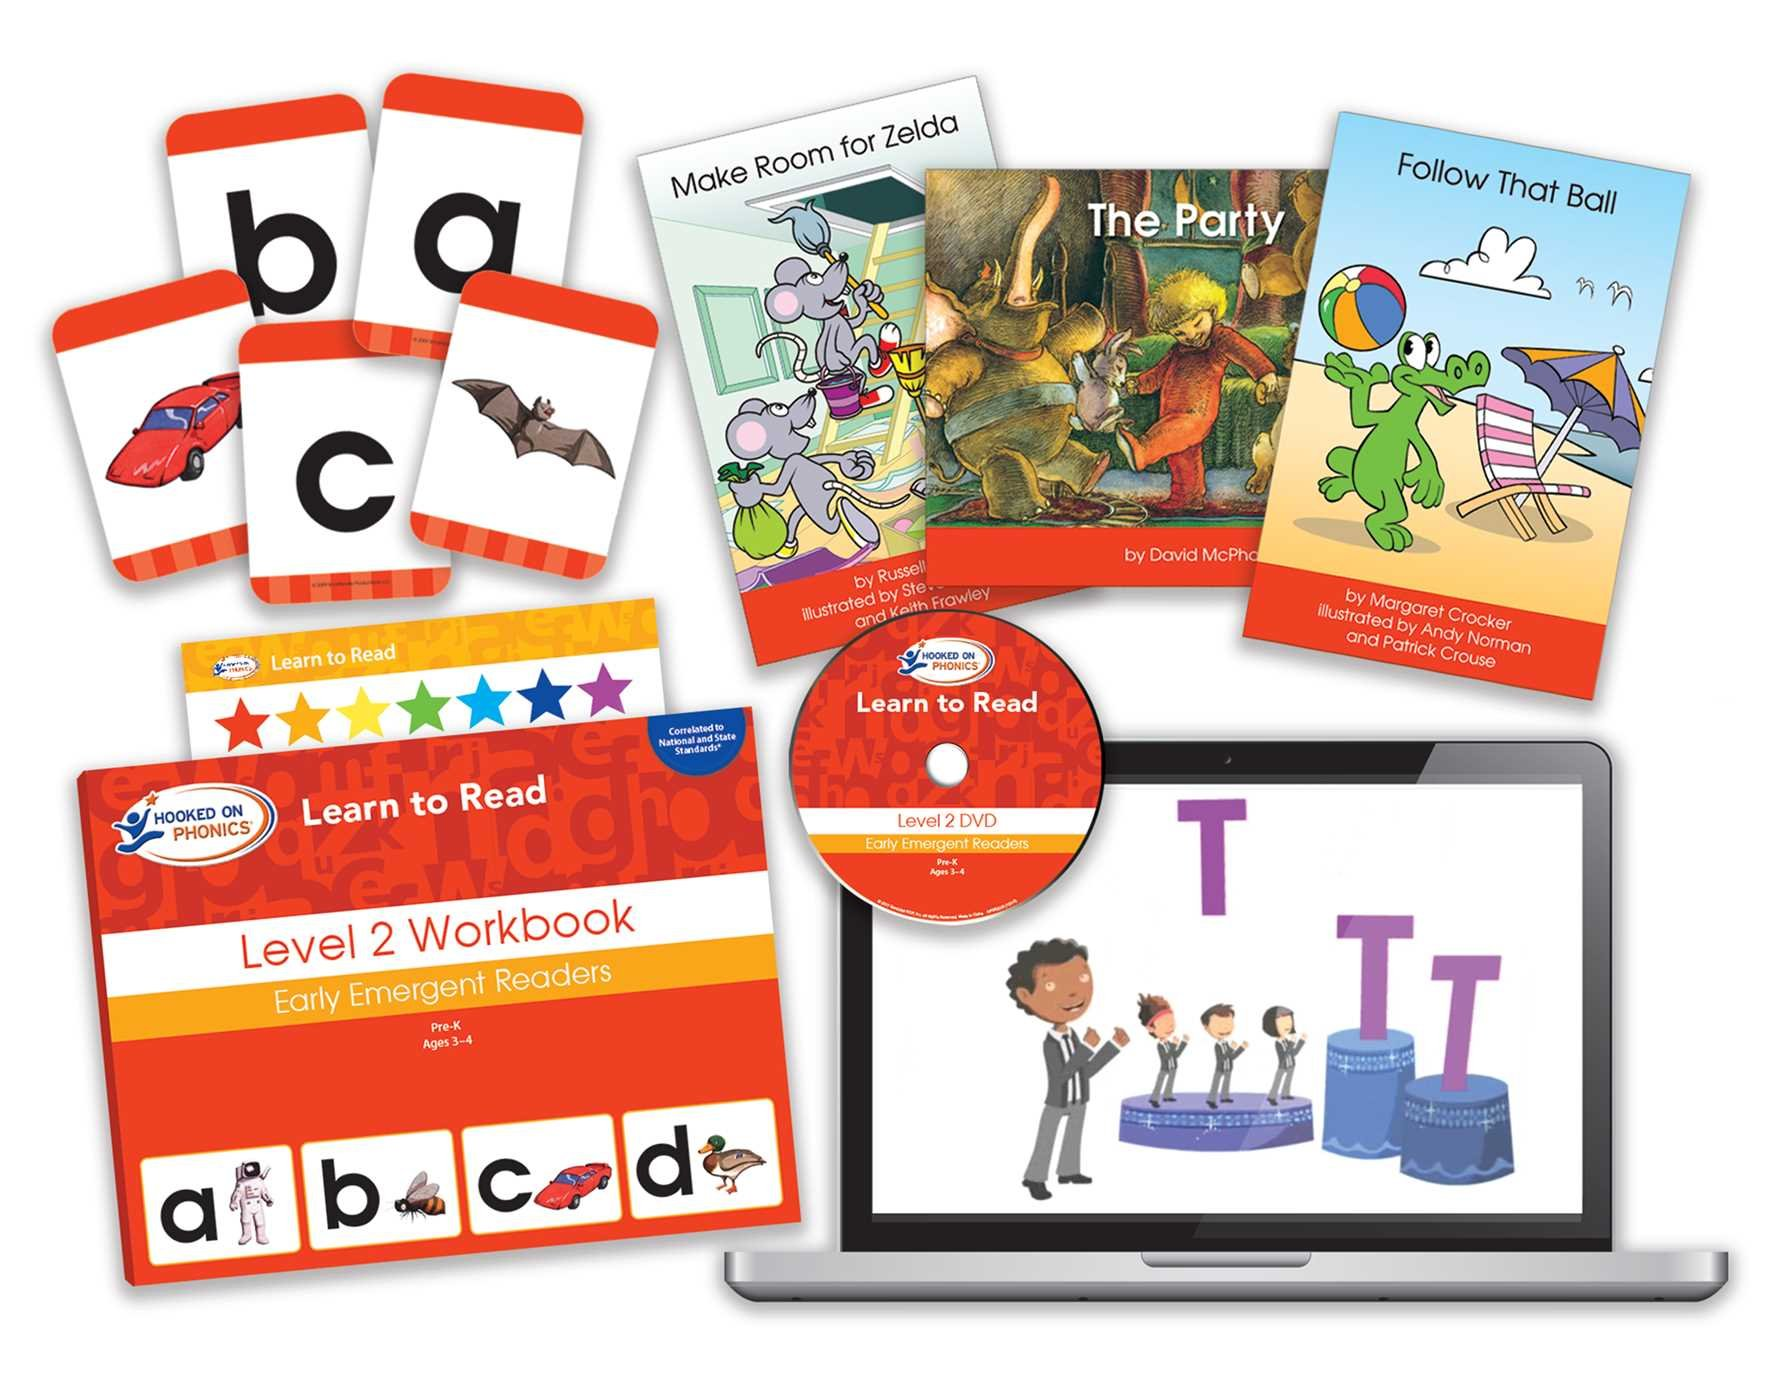 Amazon.com: Hooked on Phonics Learn to Read - Level 2: Early Emergent  Readers (Pre-K | Ages 3-4) (9781940384115): Hooked on Phonics: Books